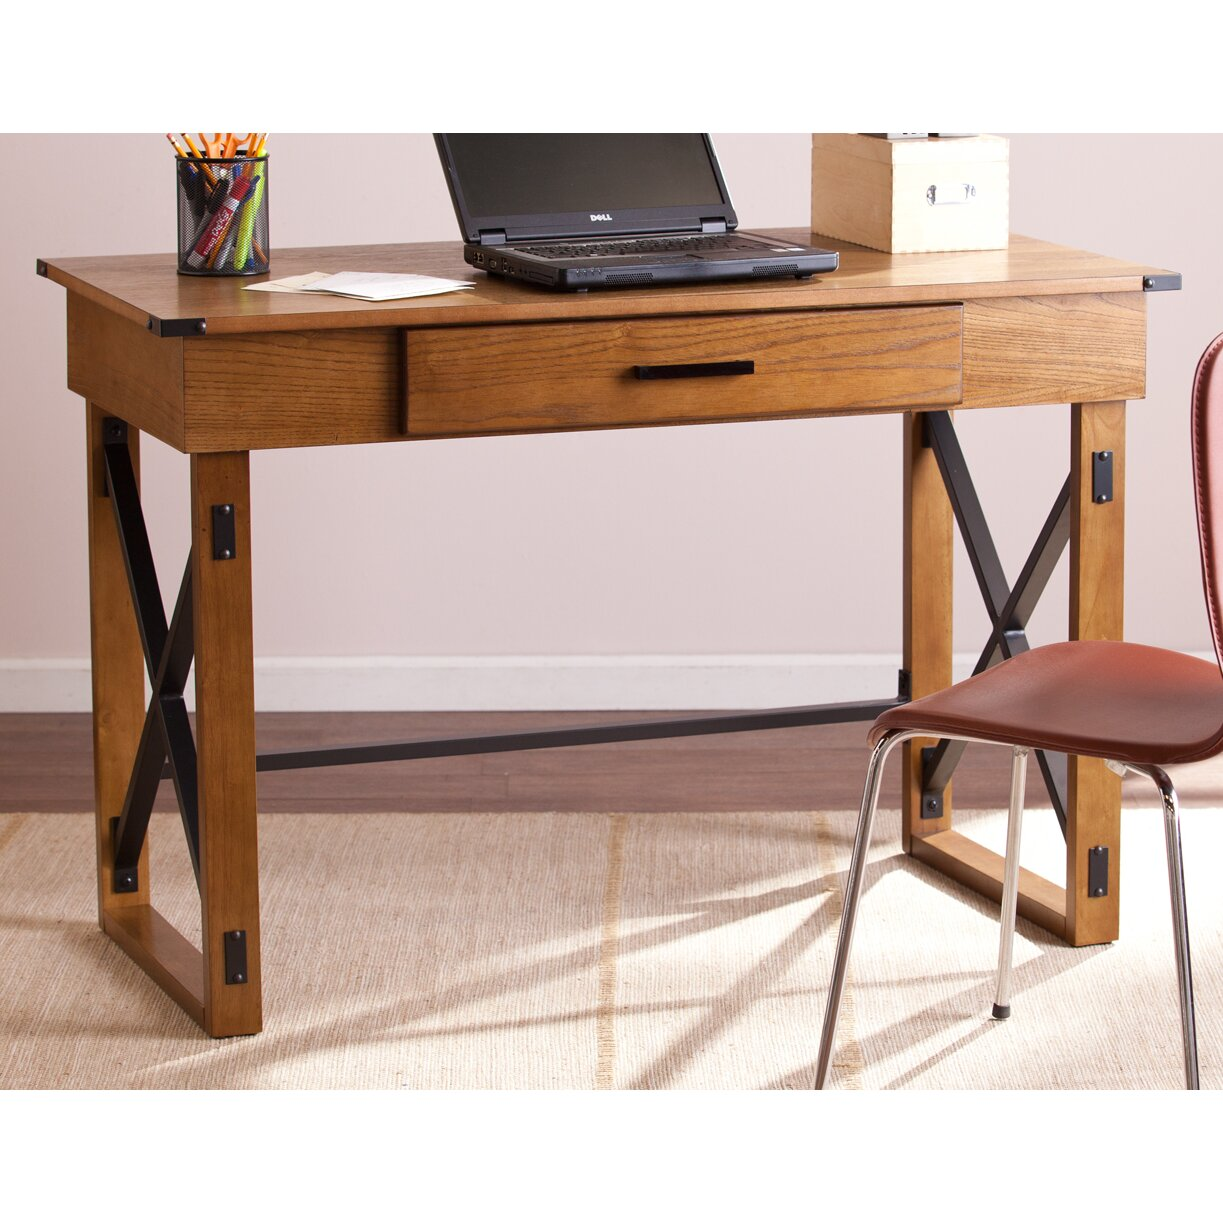 long writing desk Ikea has lots of designs to create your own customized writing desk find a range of innovative table top and table leg combinations at great prices.